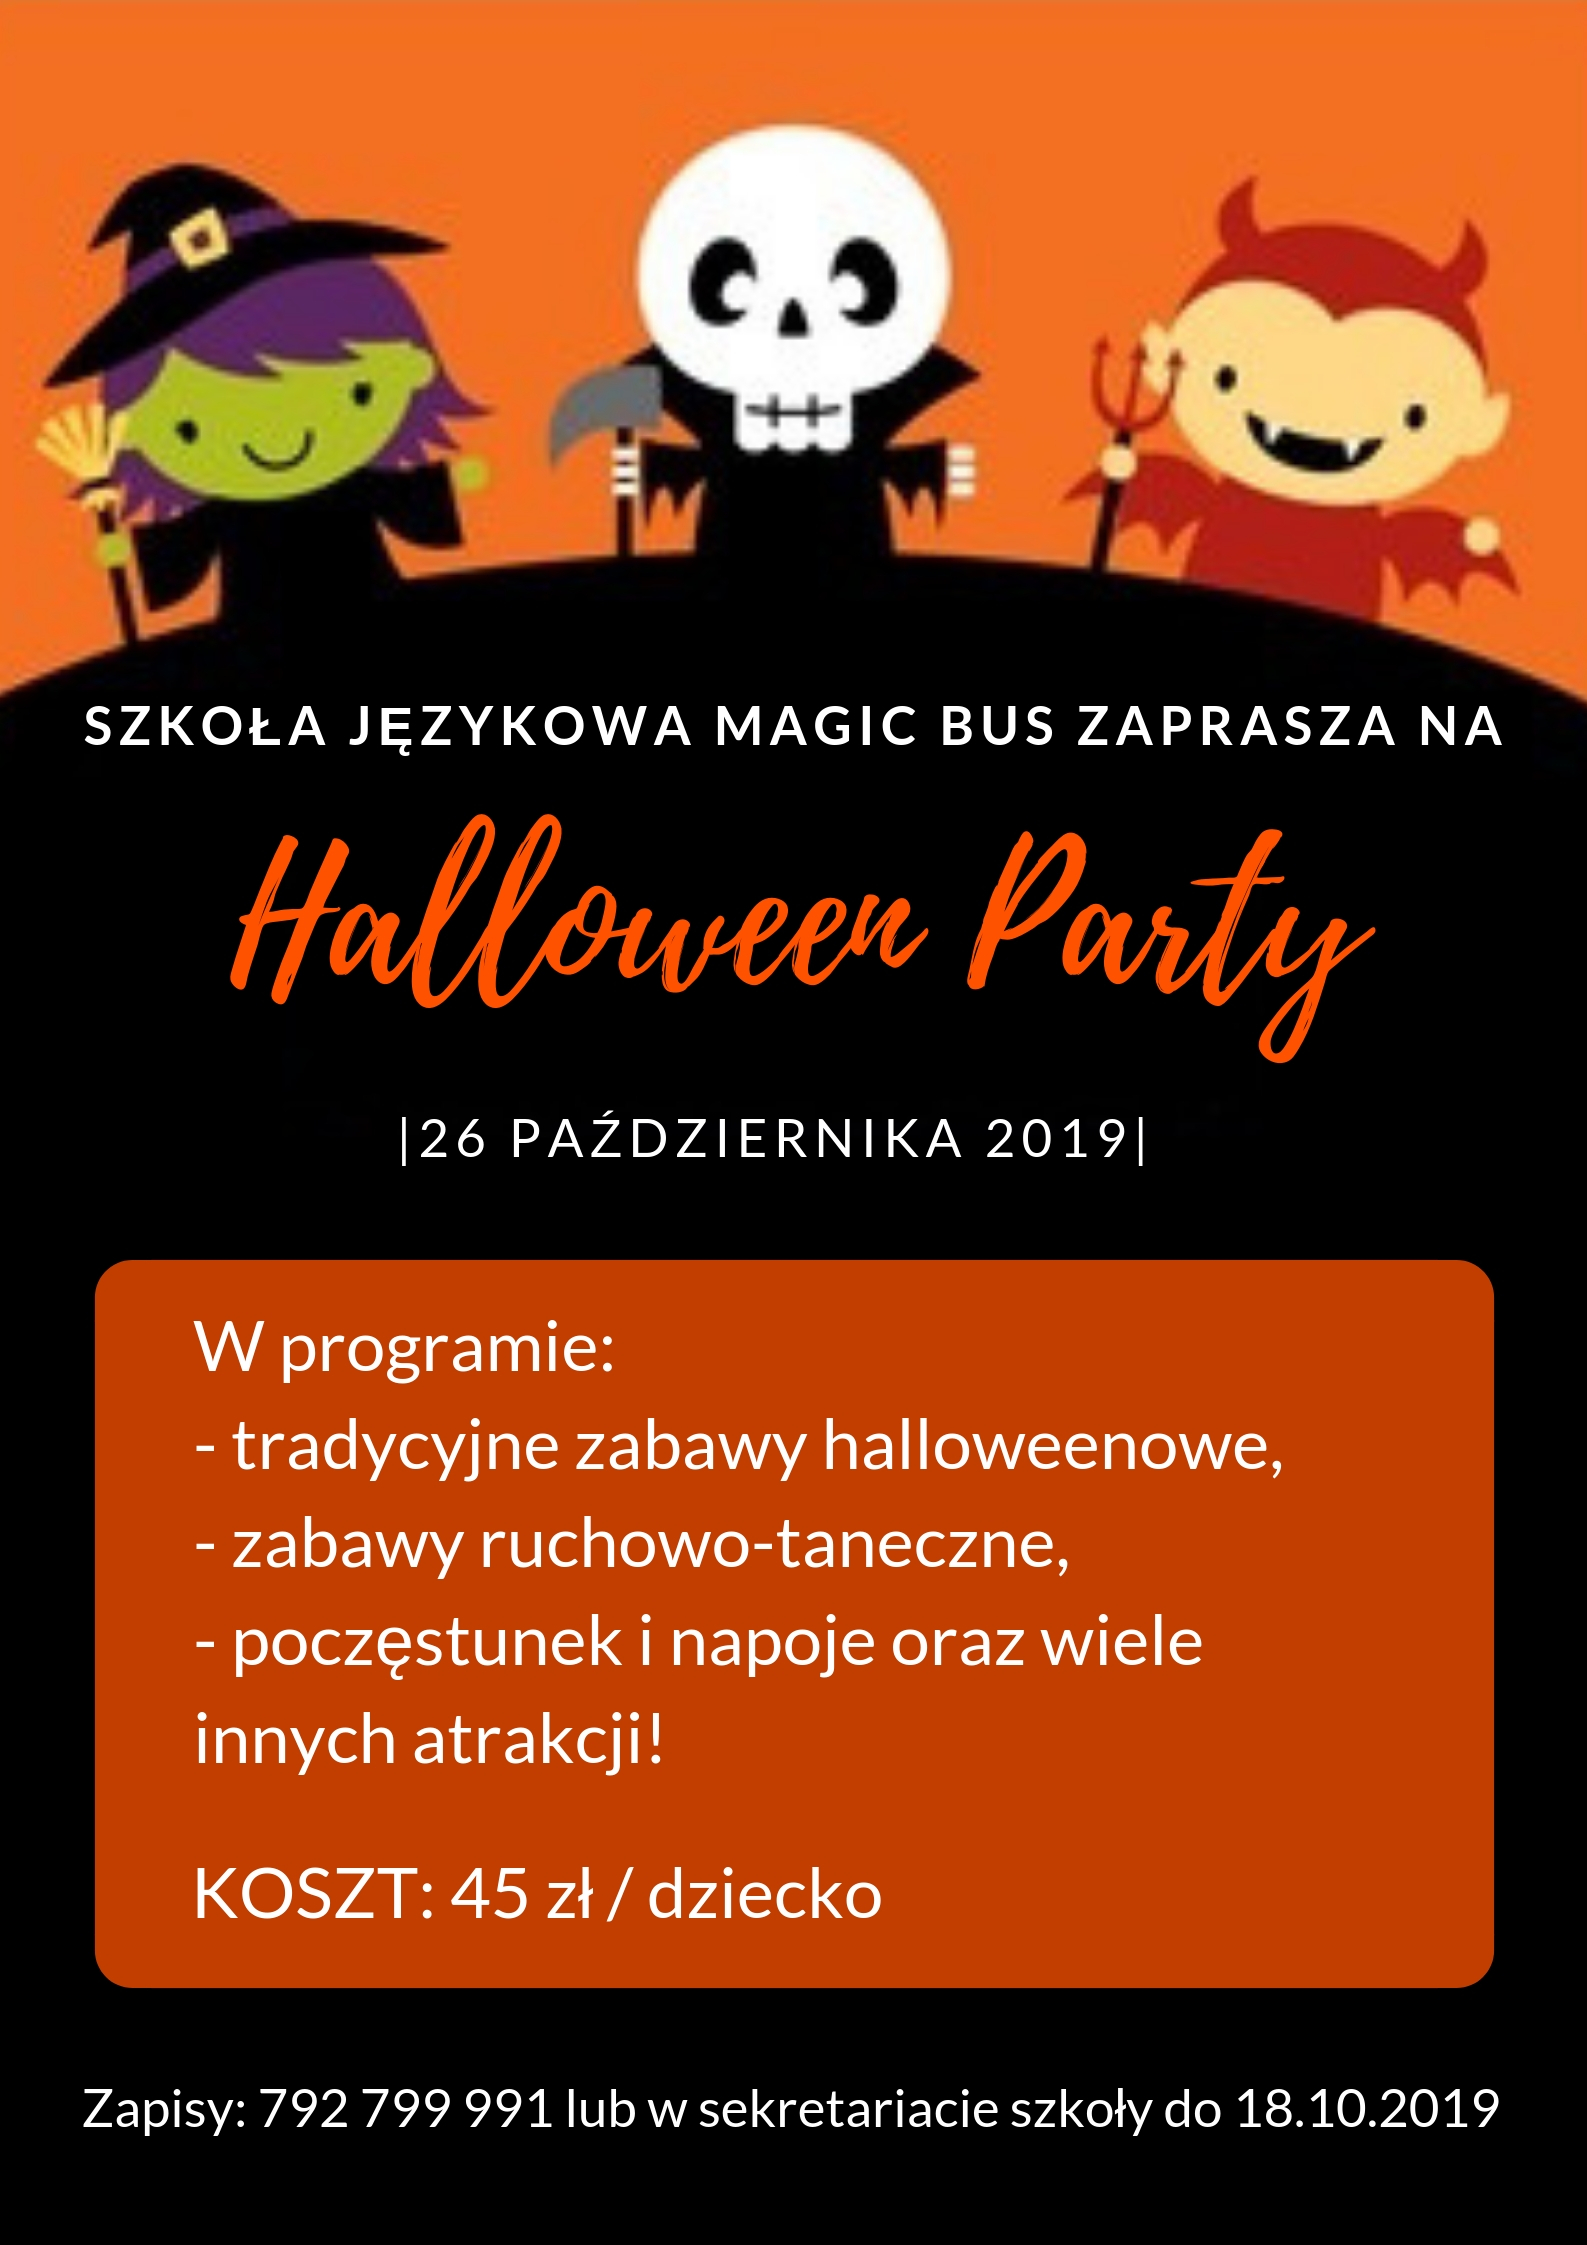 Halloween Party 2019 w Magic Bus